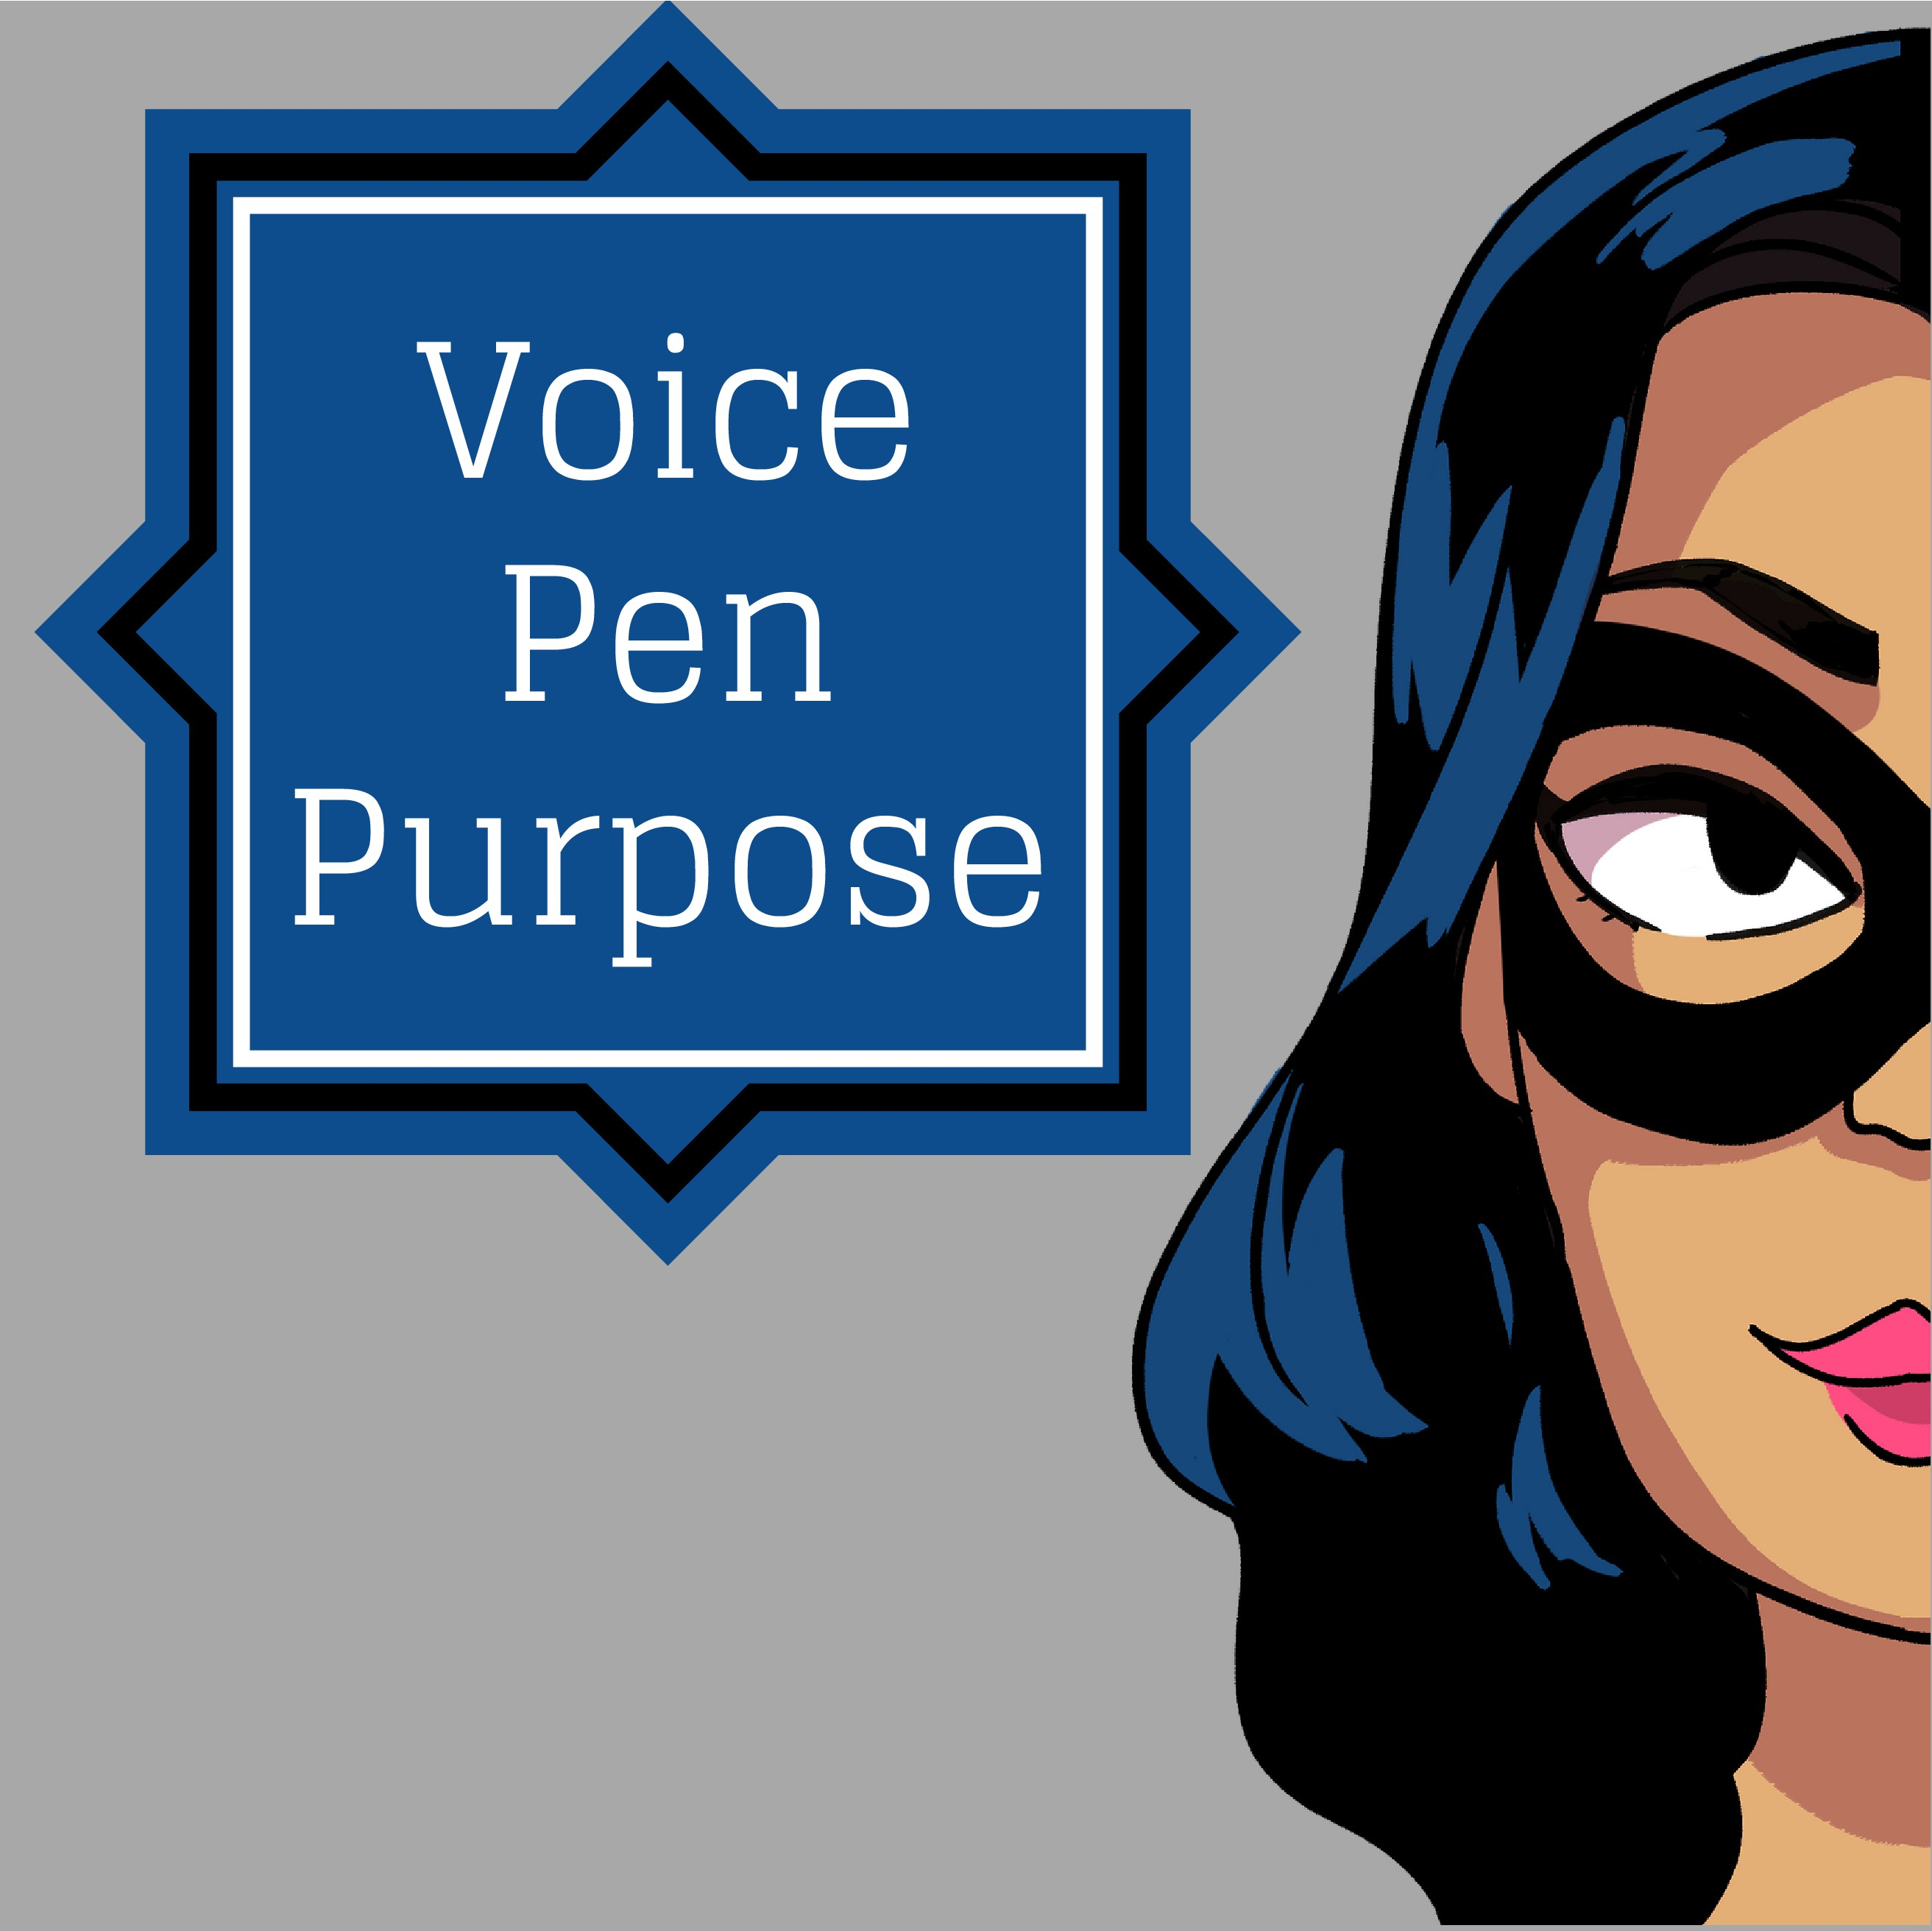 Right clipart purpose Podcast Pen VoicePenPurpose Podcast &